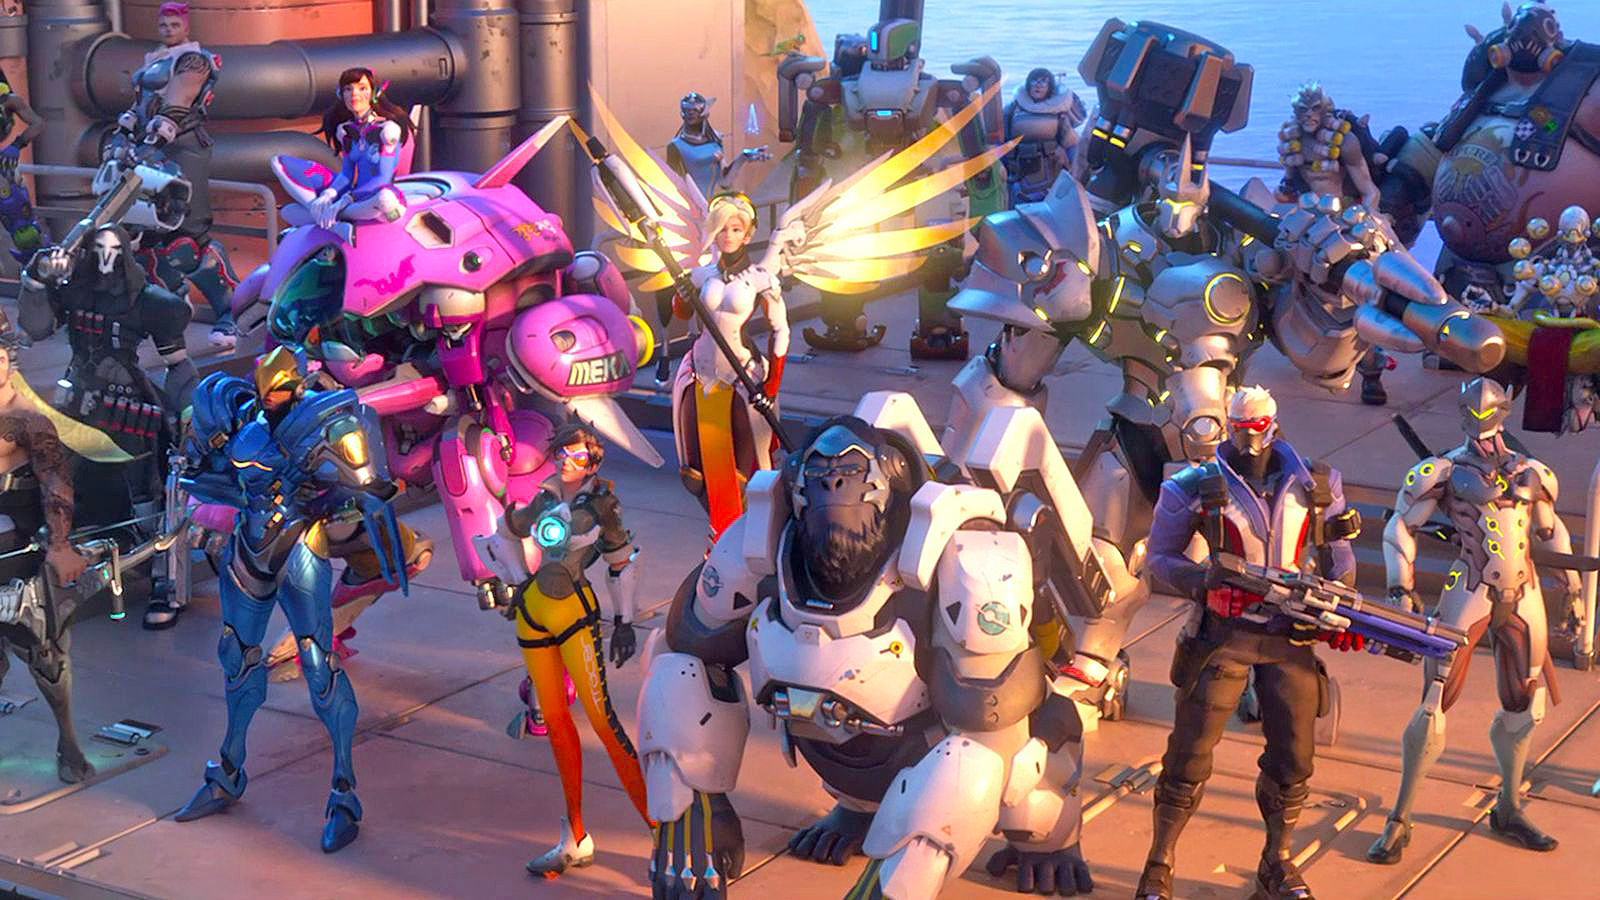 Overwatch reveals new character and game mode